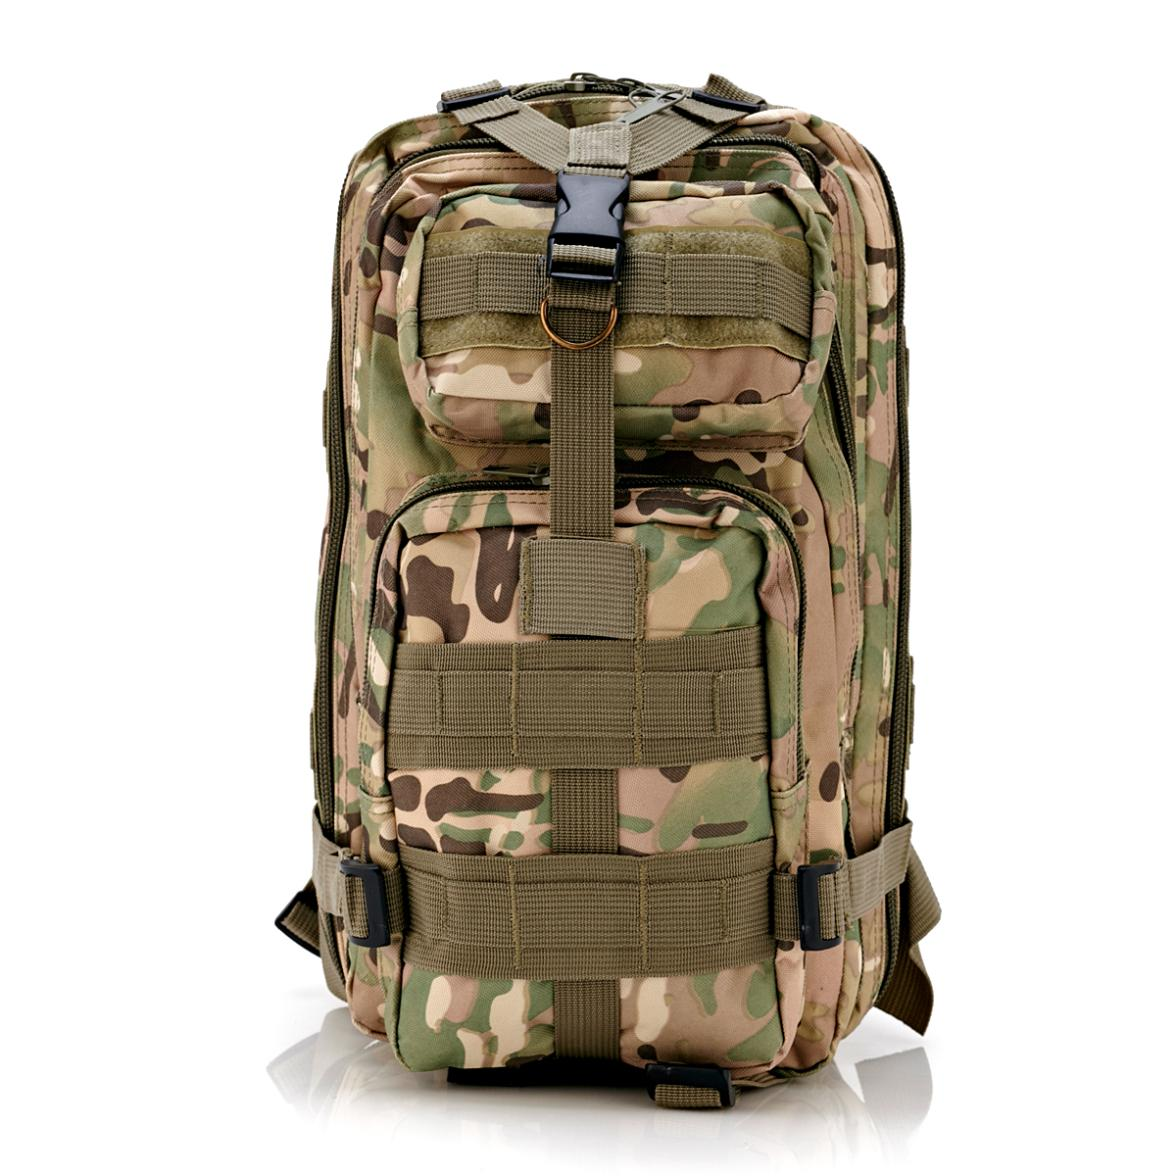 Outdoor 3p attack packets tactical molle bag outdoor backpack /travel bags for men TB-100019(China (Mainland))